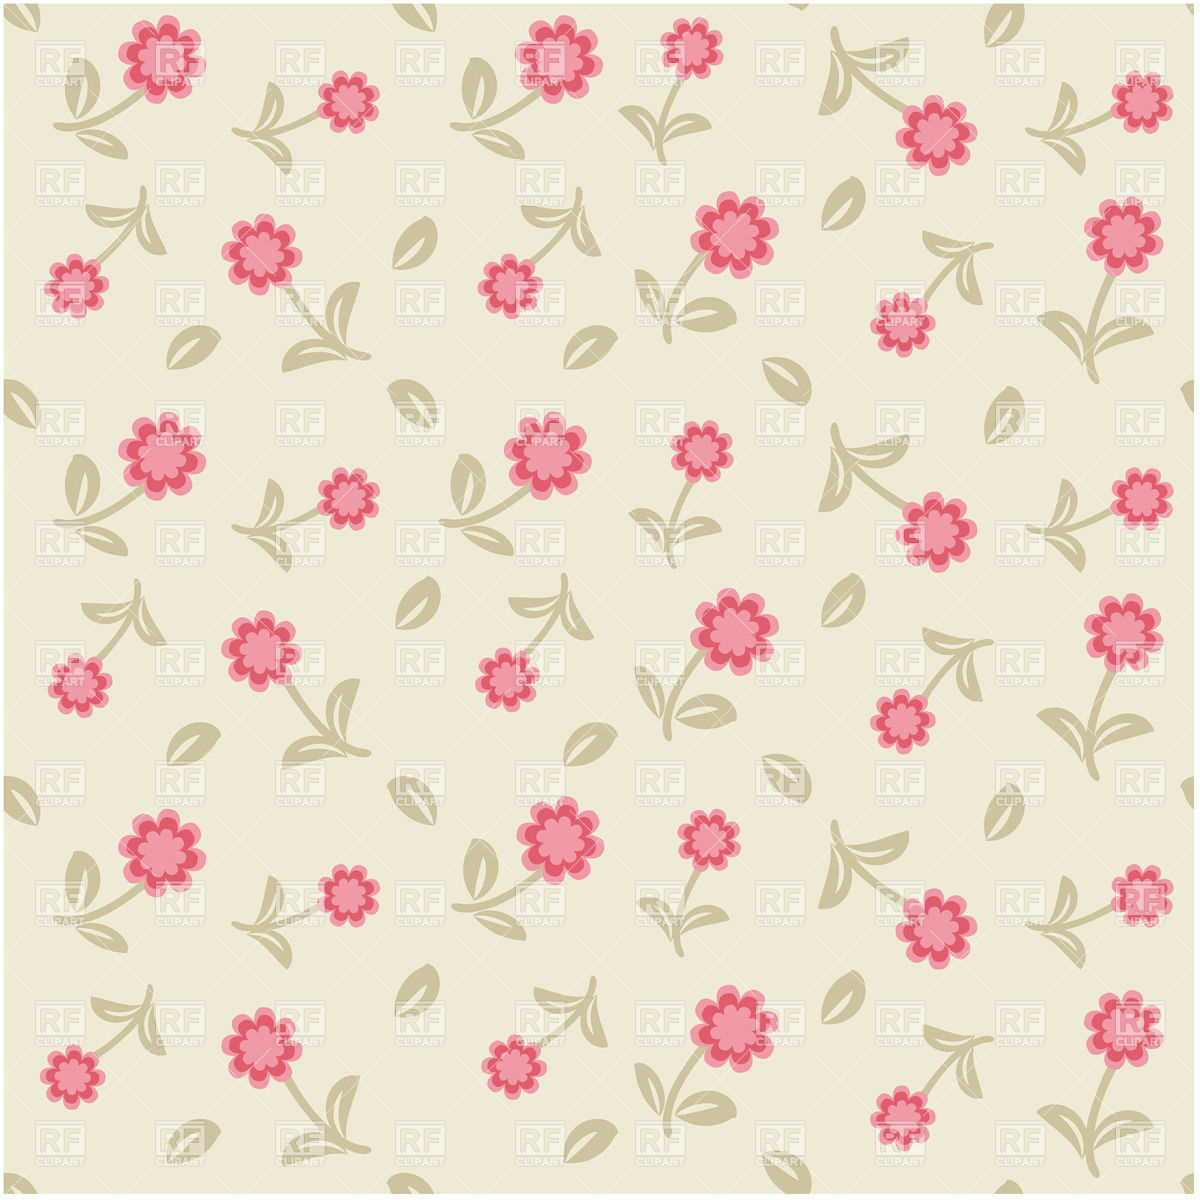 Free Download Cute Pastel Floral Seamless Background 22591